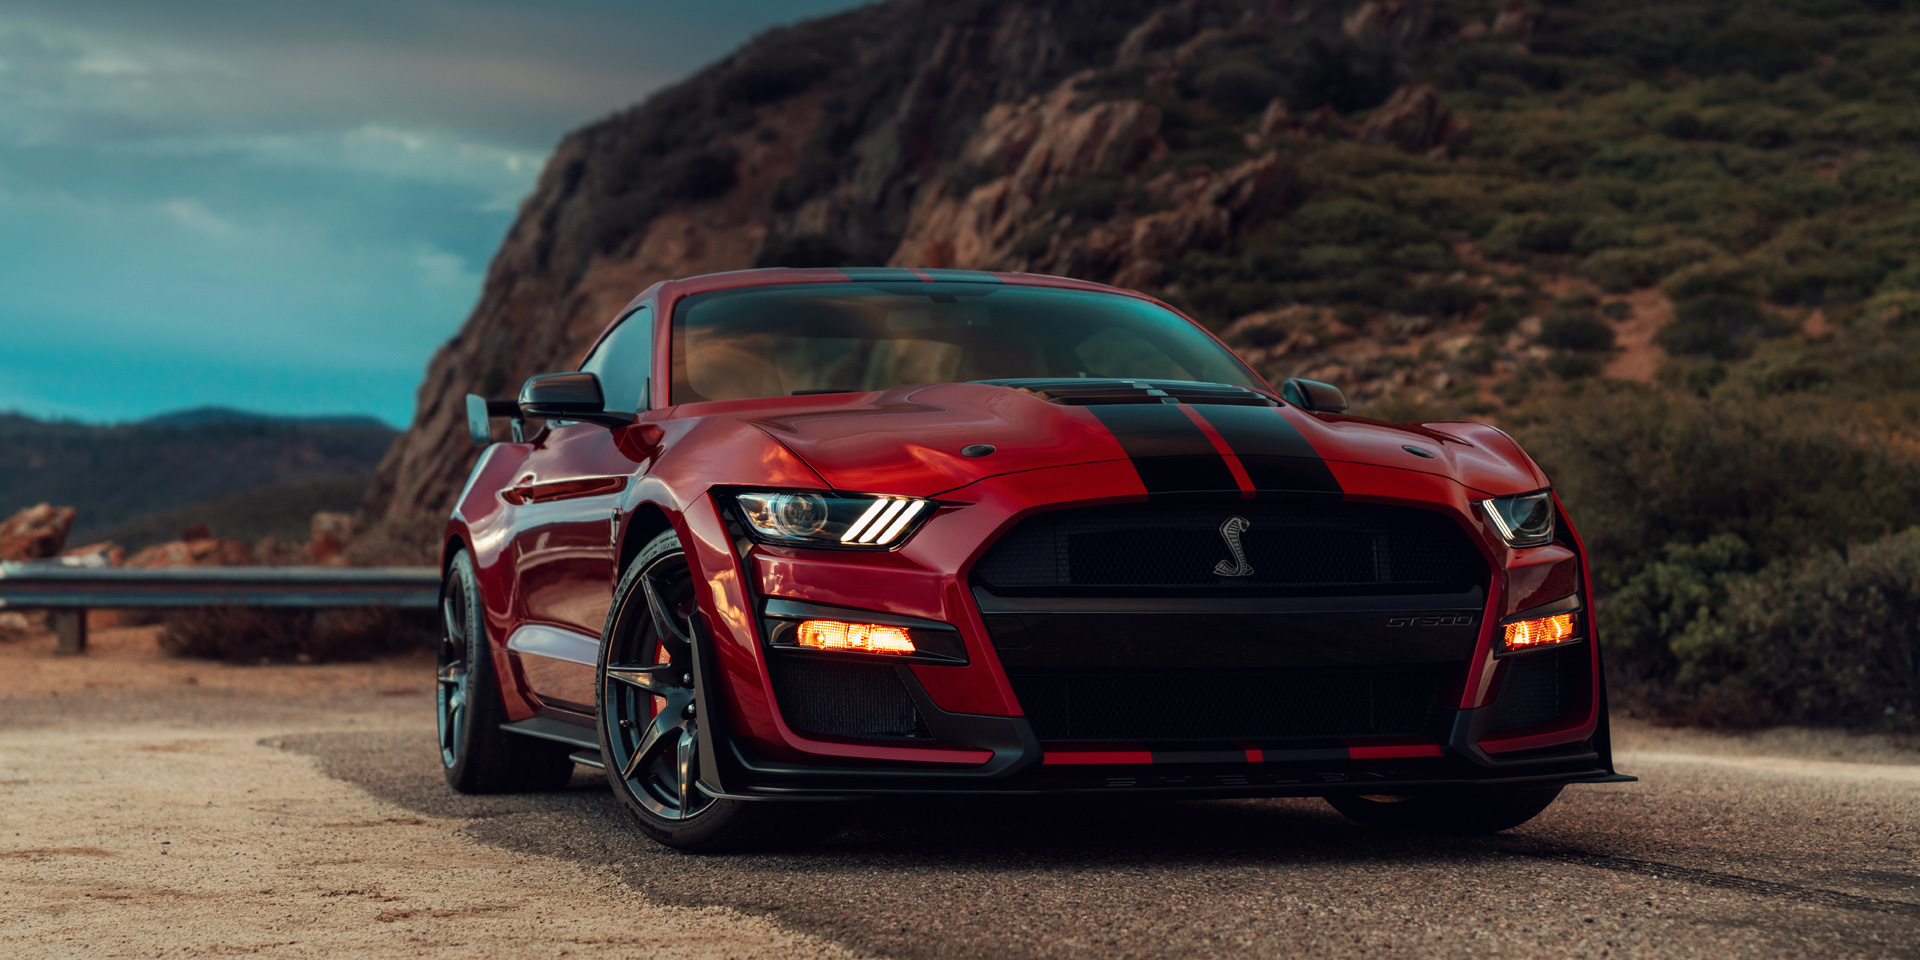 2020 Ford Mustang Shelby Gt500 Vehicles On Display Chicago